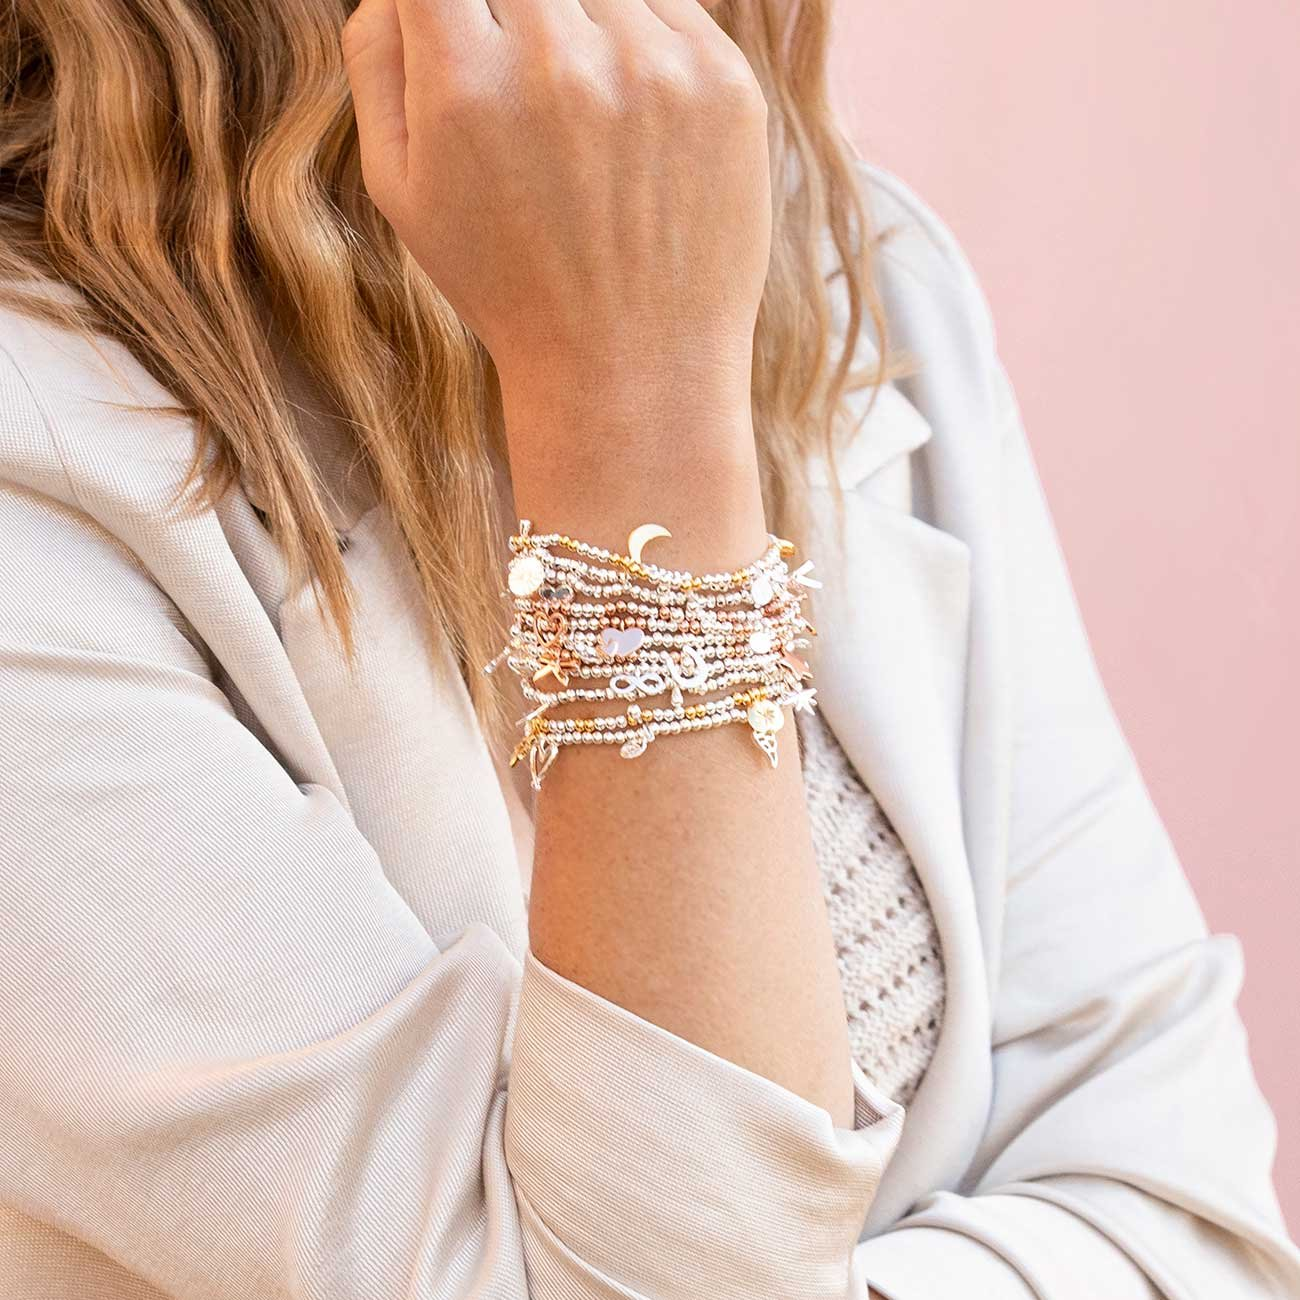 Joma Jewellery Life's A Charm Bracelet Sparkle and Shine